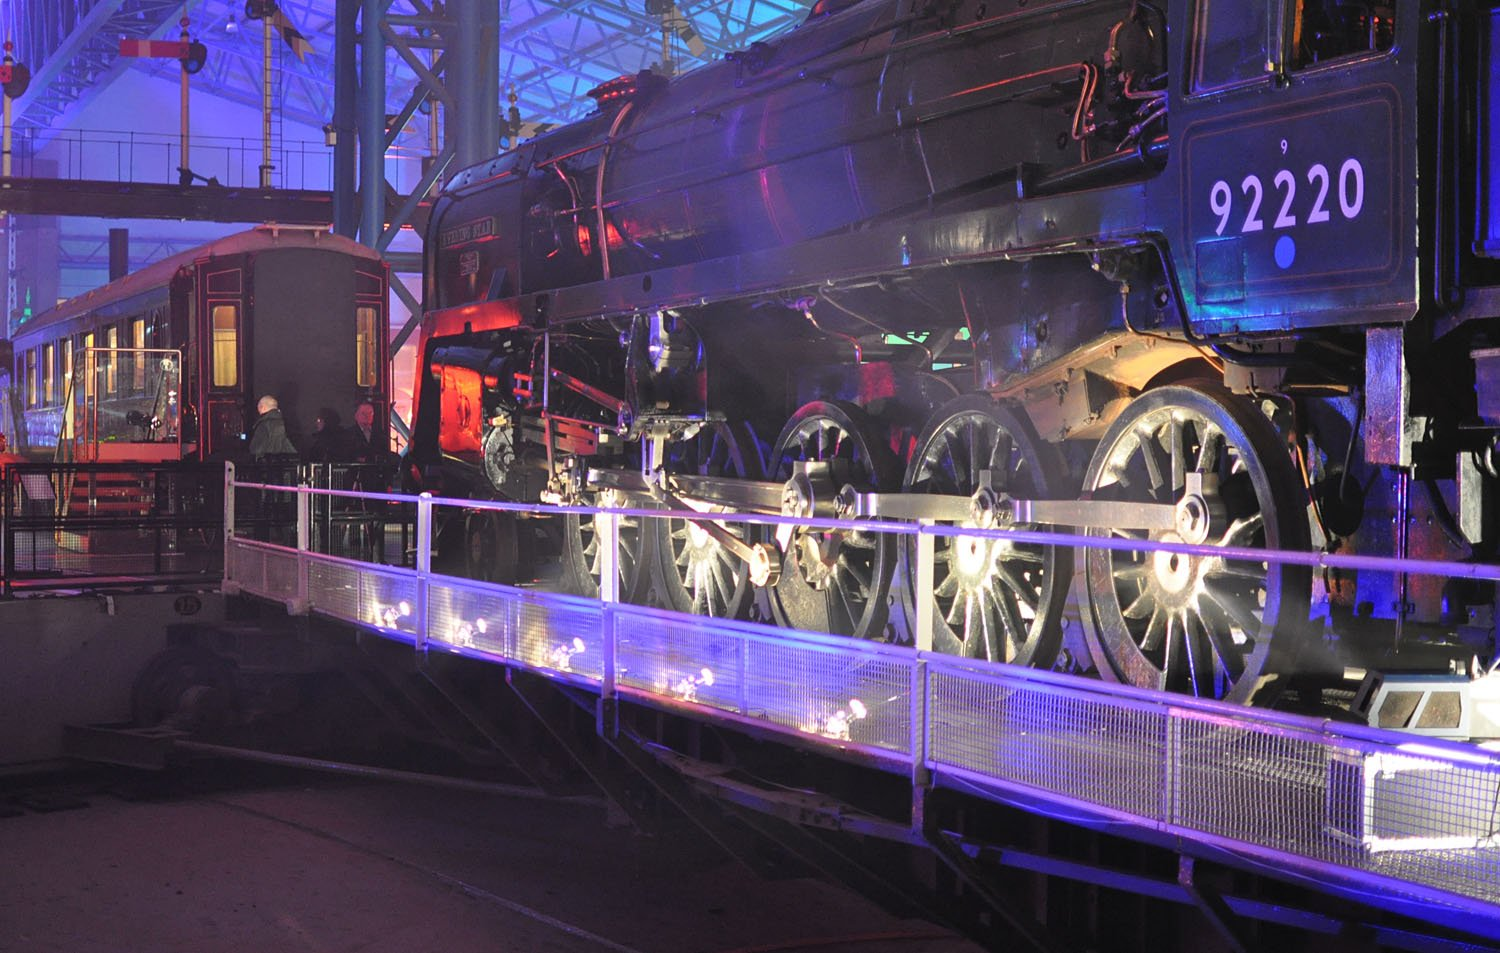 National Railway Museum York - Illuminating York 2015